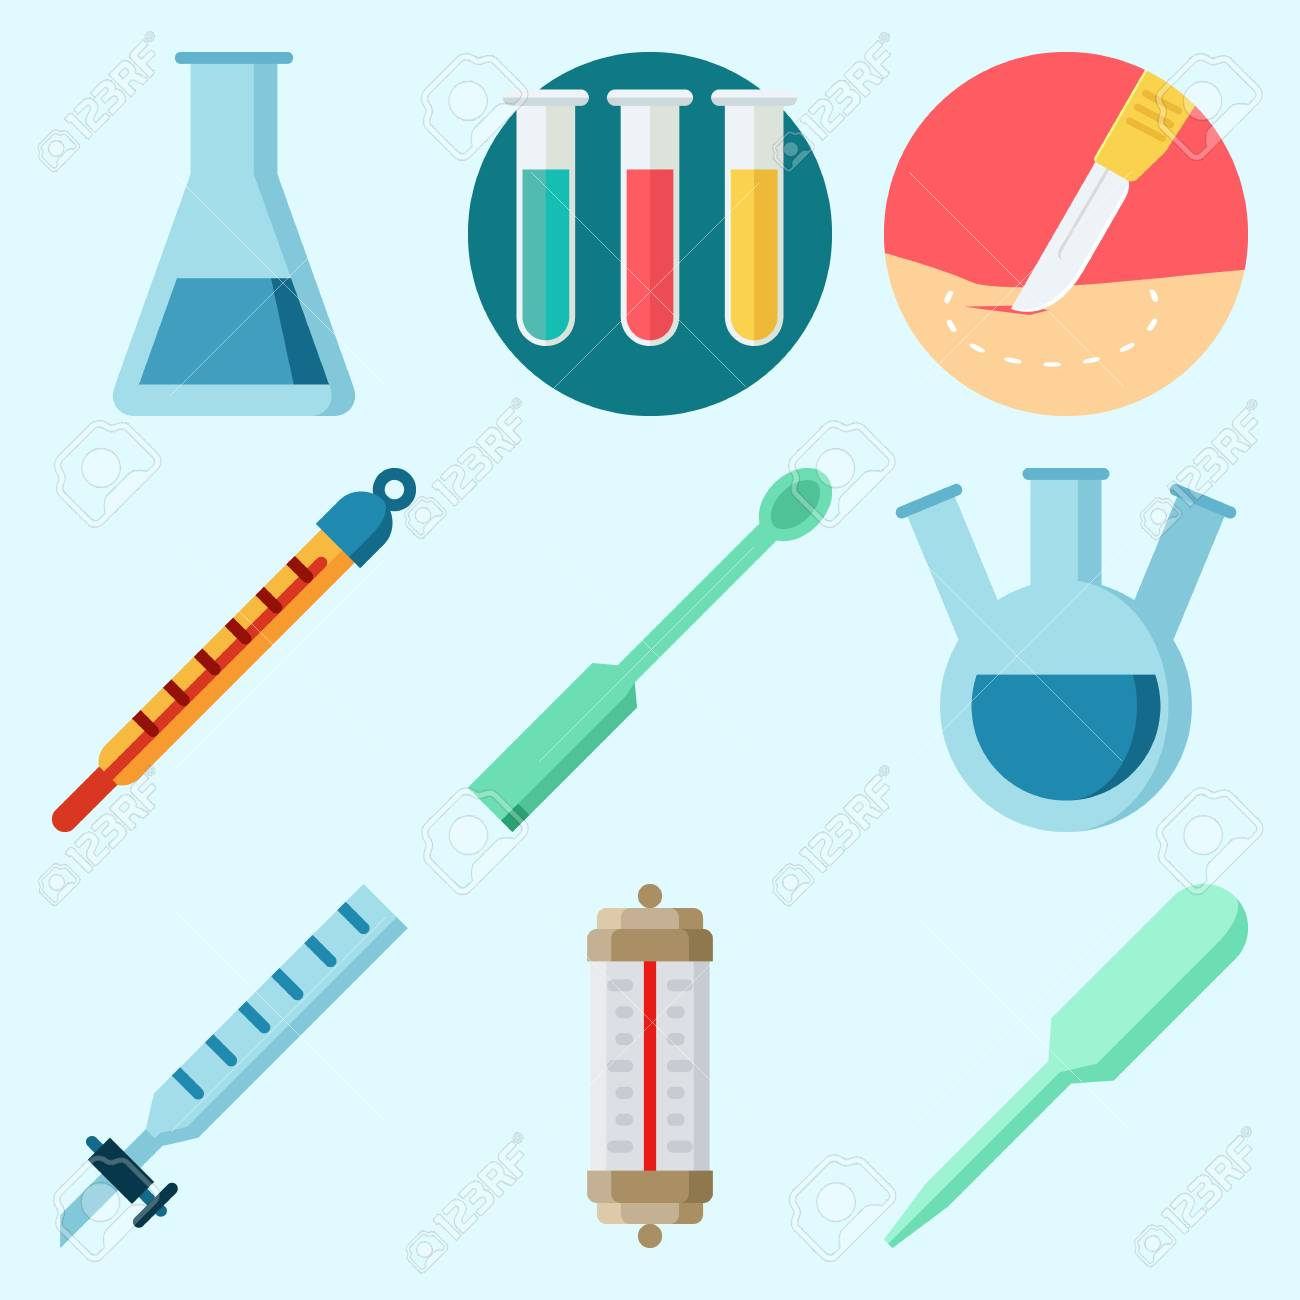 Thermometer Laboratory Apparatus Icons Set About Laboratory With Dropper Test Tube Thermometer